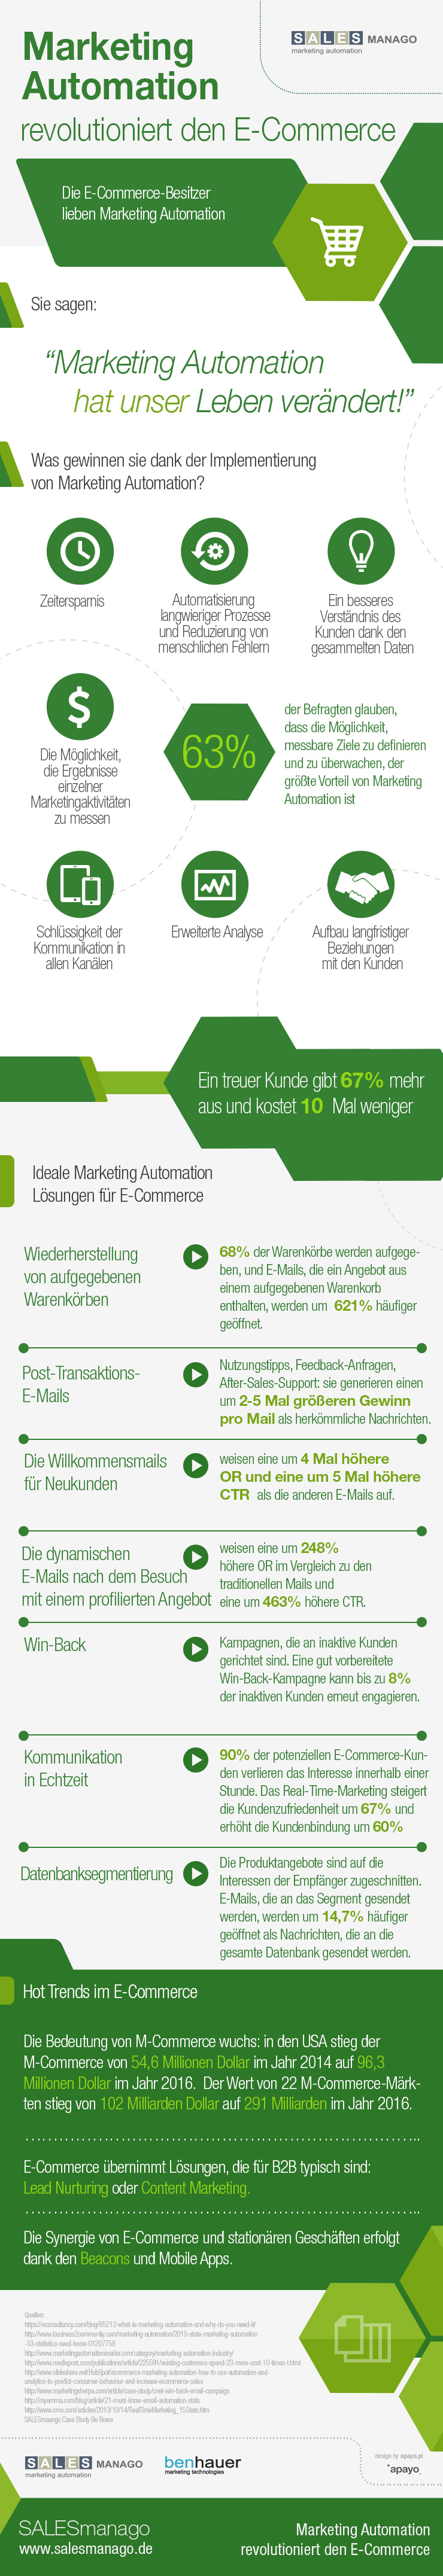 Marketing Automation revolutioniert den E-Commerce